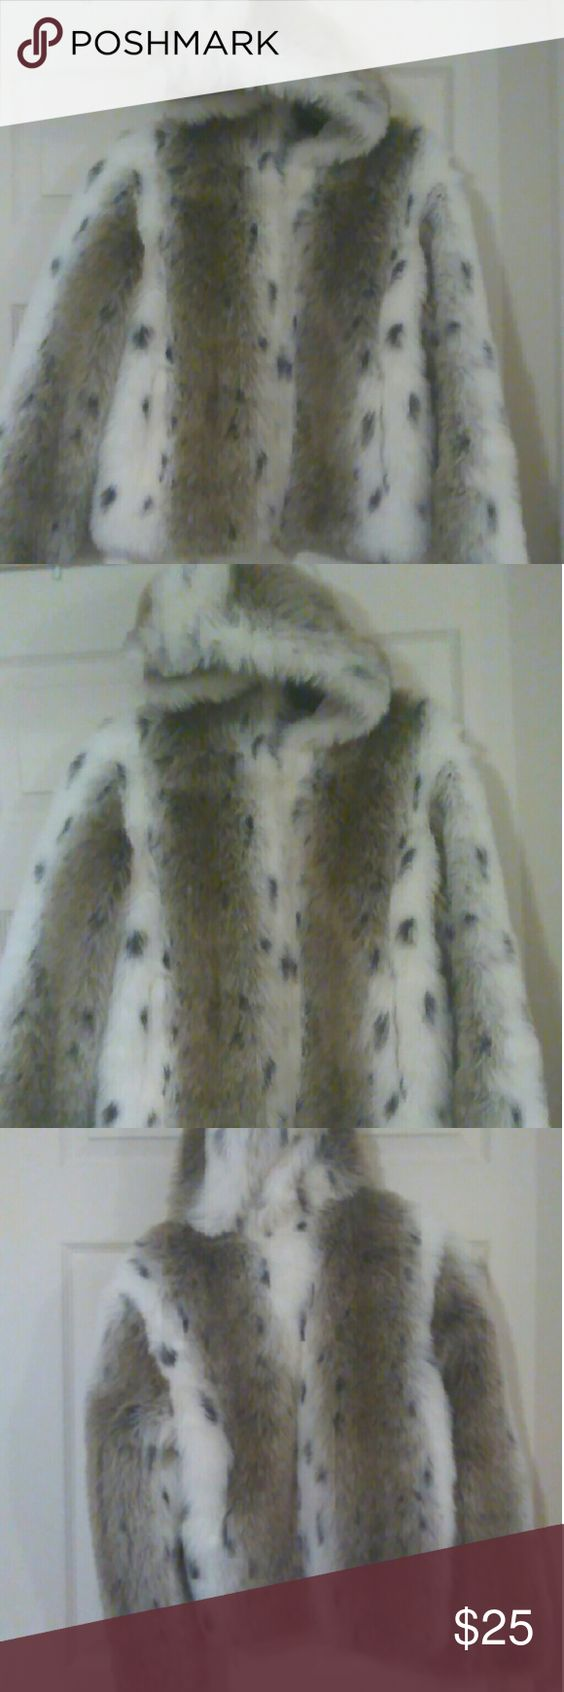 Faux fur jacket Never worn, perfect condition Jackets & Coats